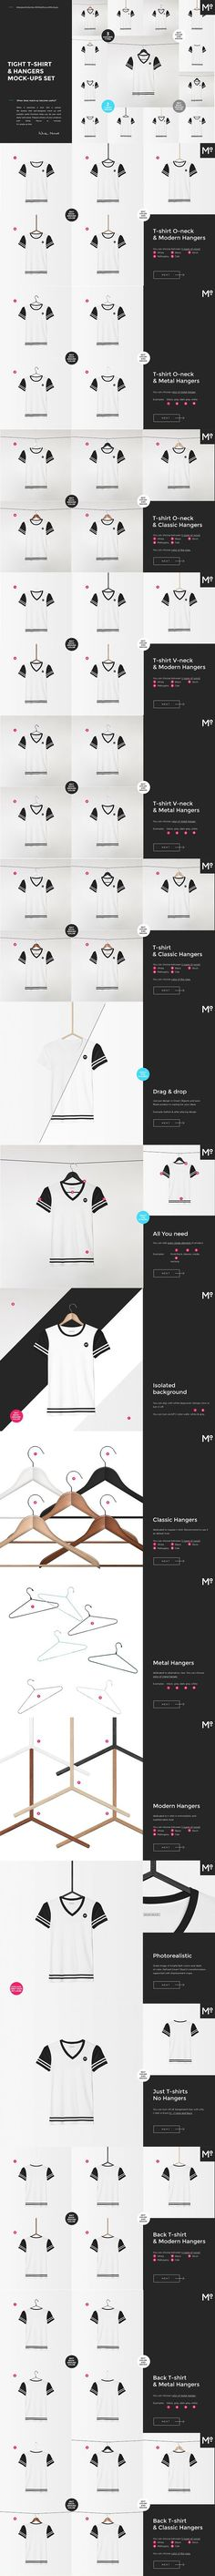 Tight T-shirt & Hangers Mock-ups Set. Business Infographic